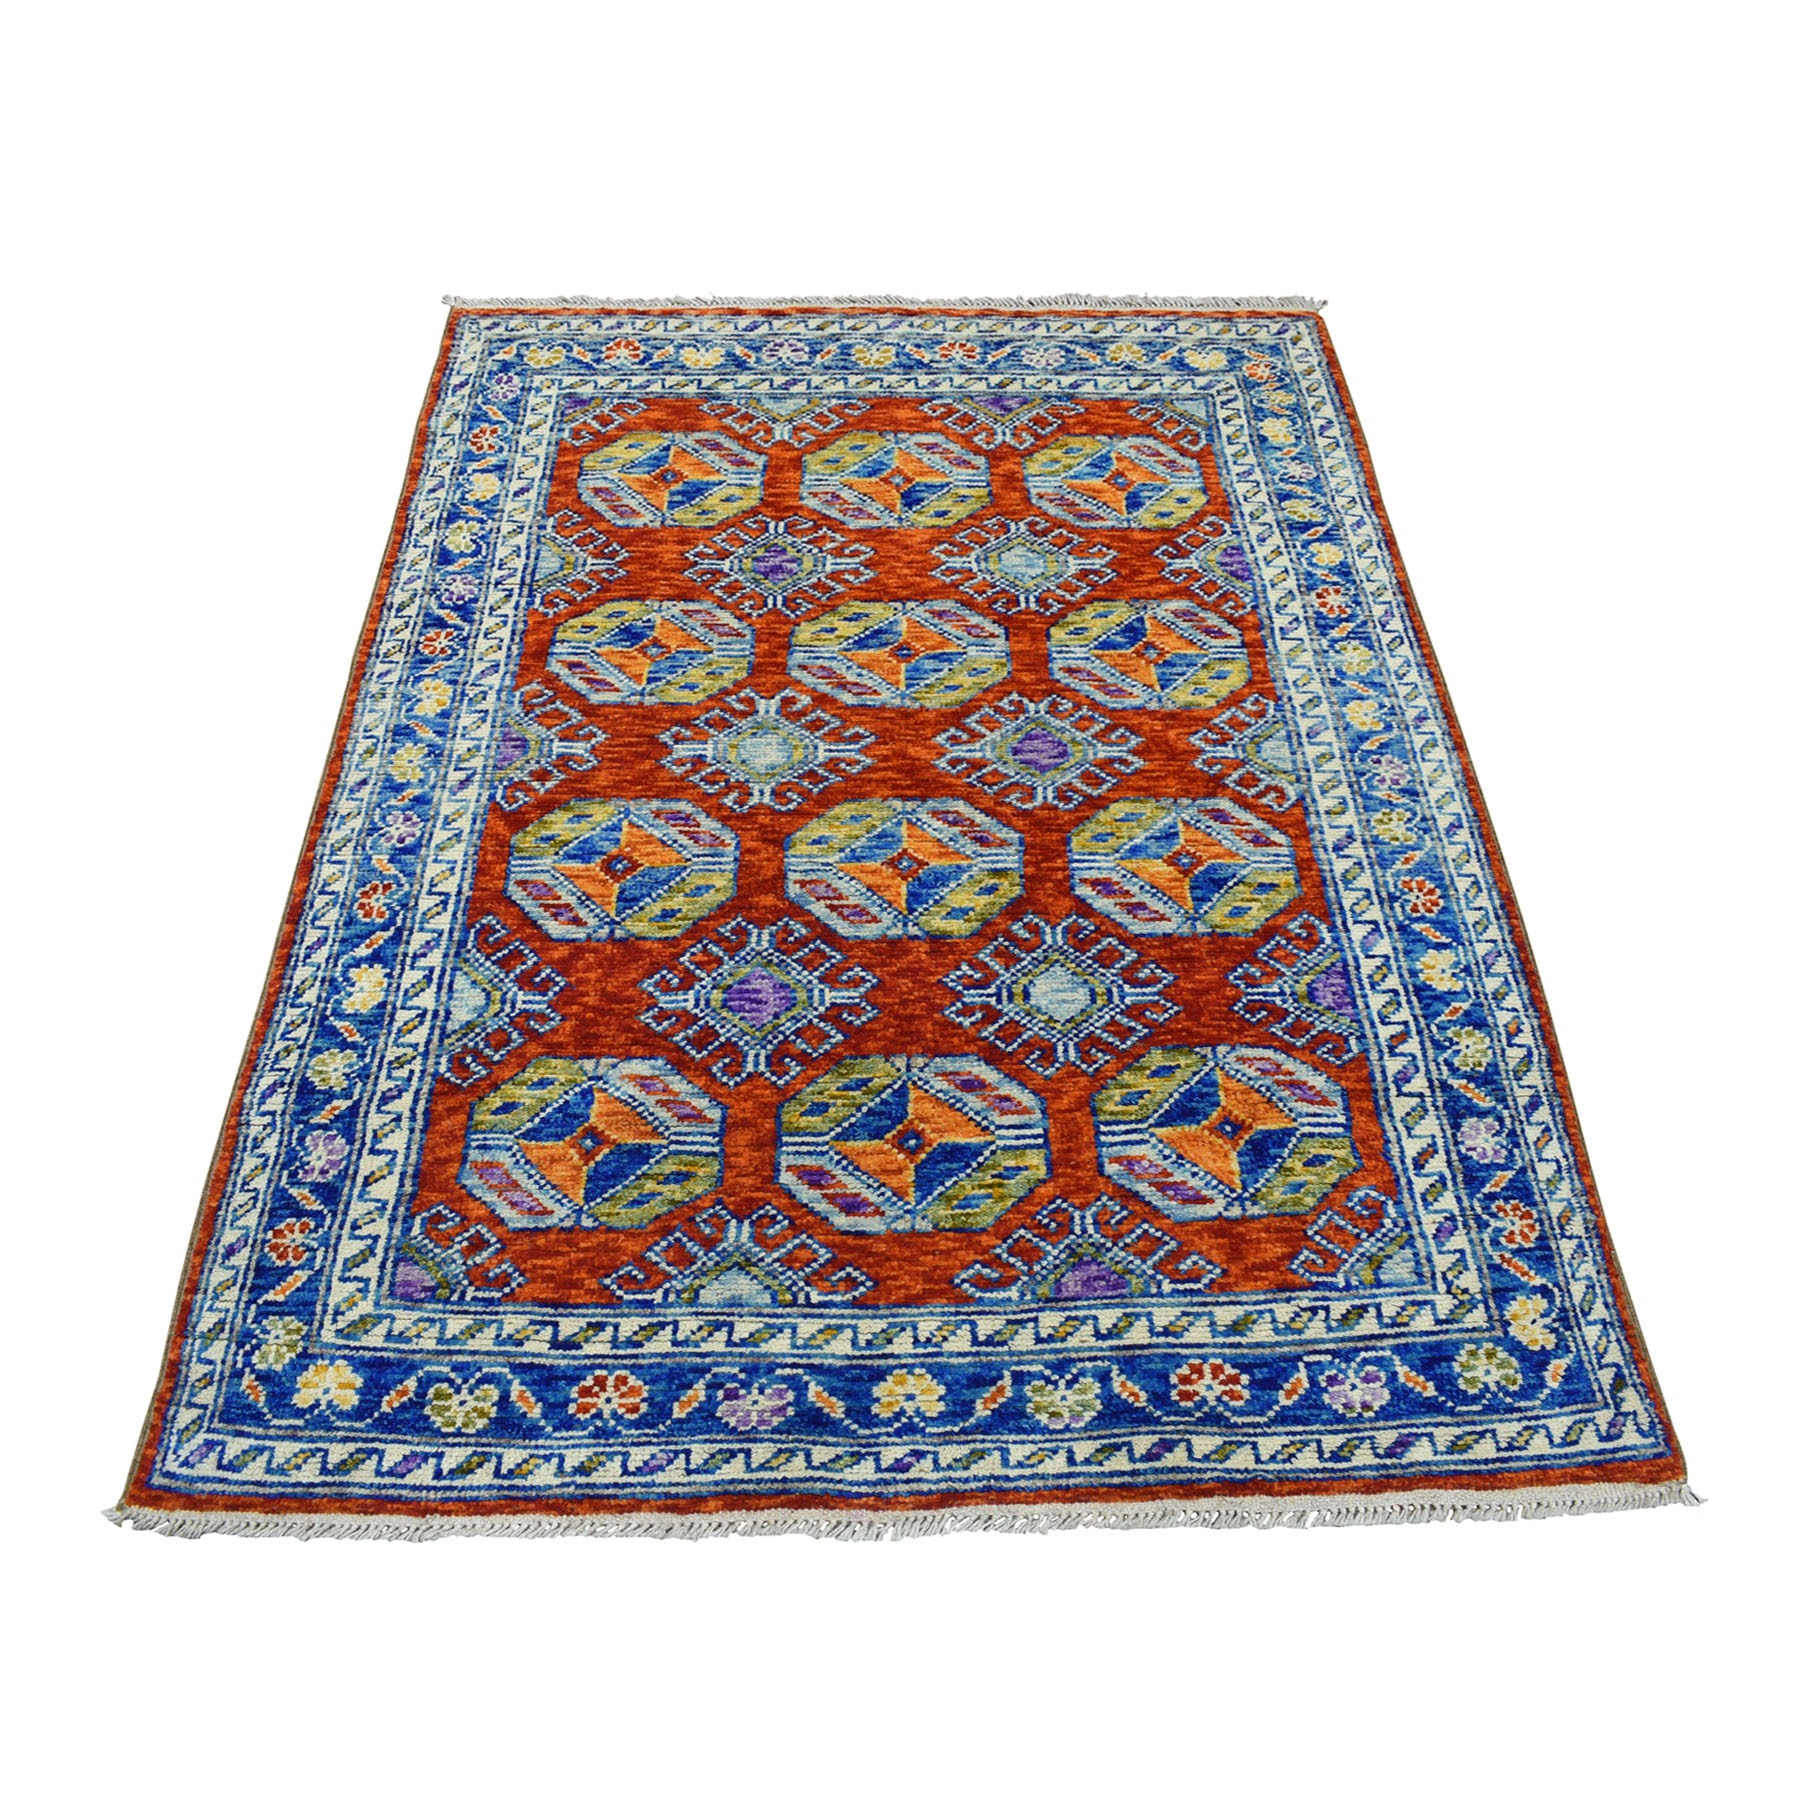 4'x6' Orange Elephant Feet Design Colorful Afghan Baluch Hand Knotted Pure Wool Oriental Rug